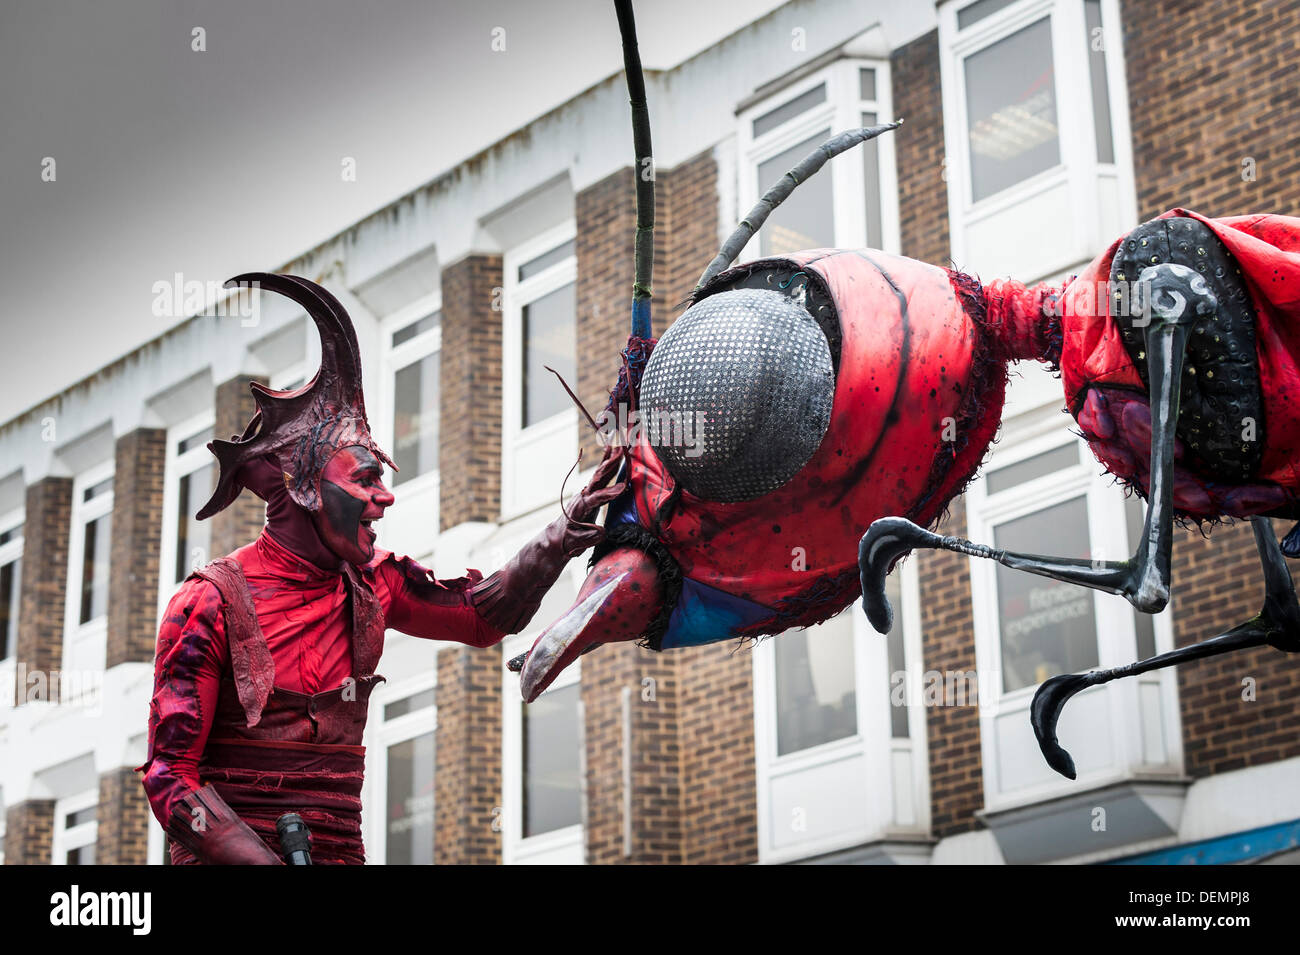 Witham, Essex, UK. 21st September 2013. The XL Insects performing at the Witham International Puppet Festival.  Photographer: Gordon Scammell/Alamy Live News - Stock Image